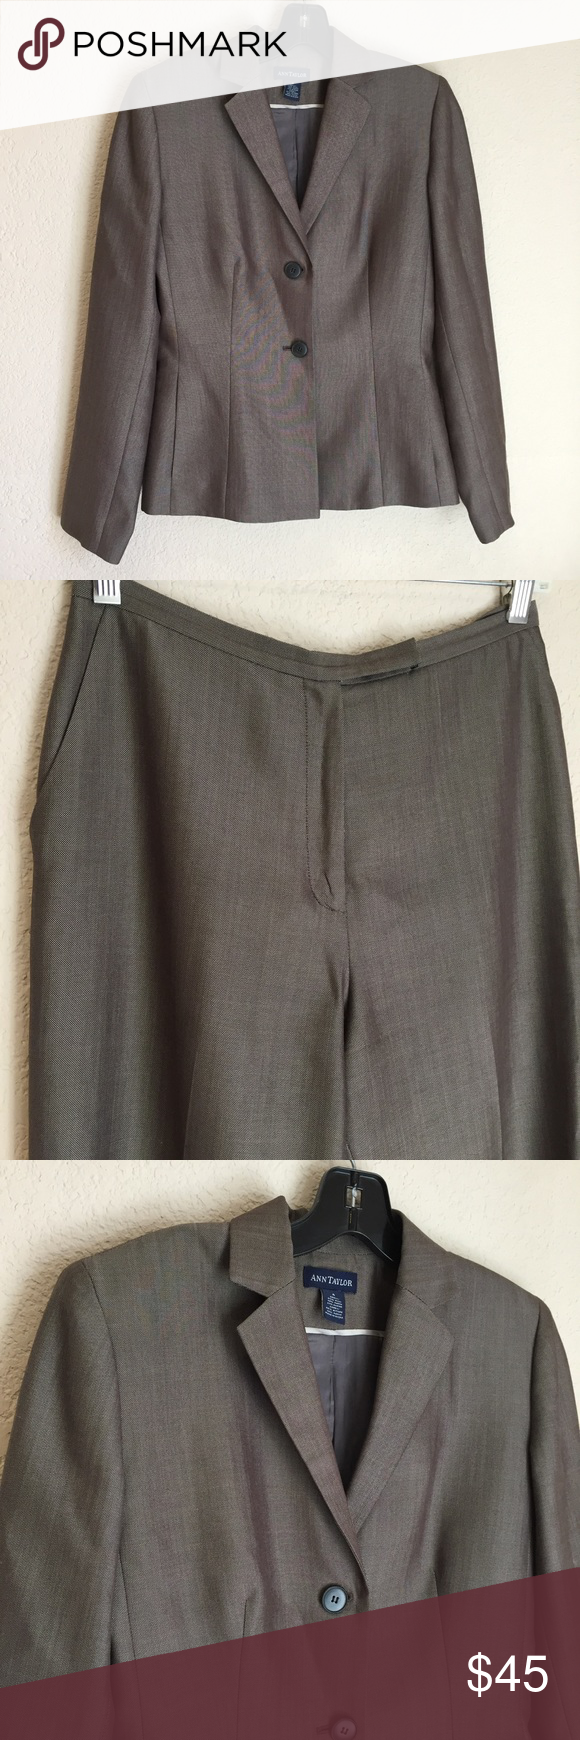 Ann Taylor women's wool blend two piece gray suit Ann Taylor women's wool blend two piece gray suit good preloved condition this is being sold as a set Ann Taylor Other